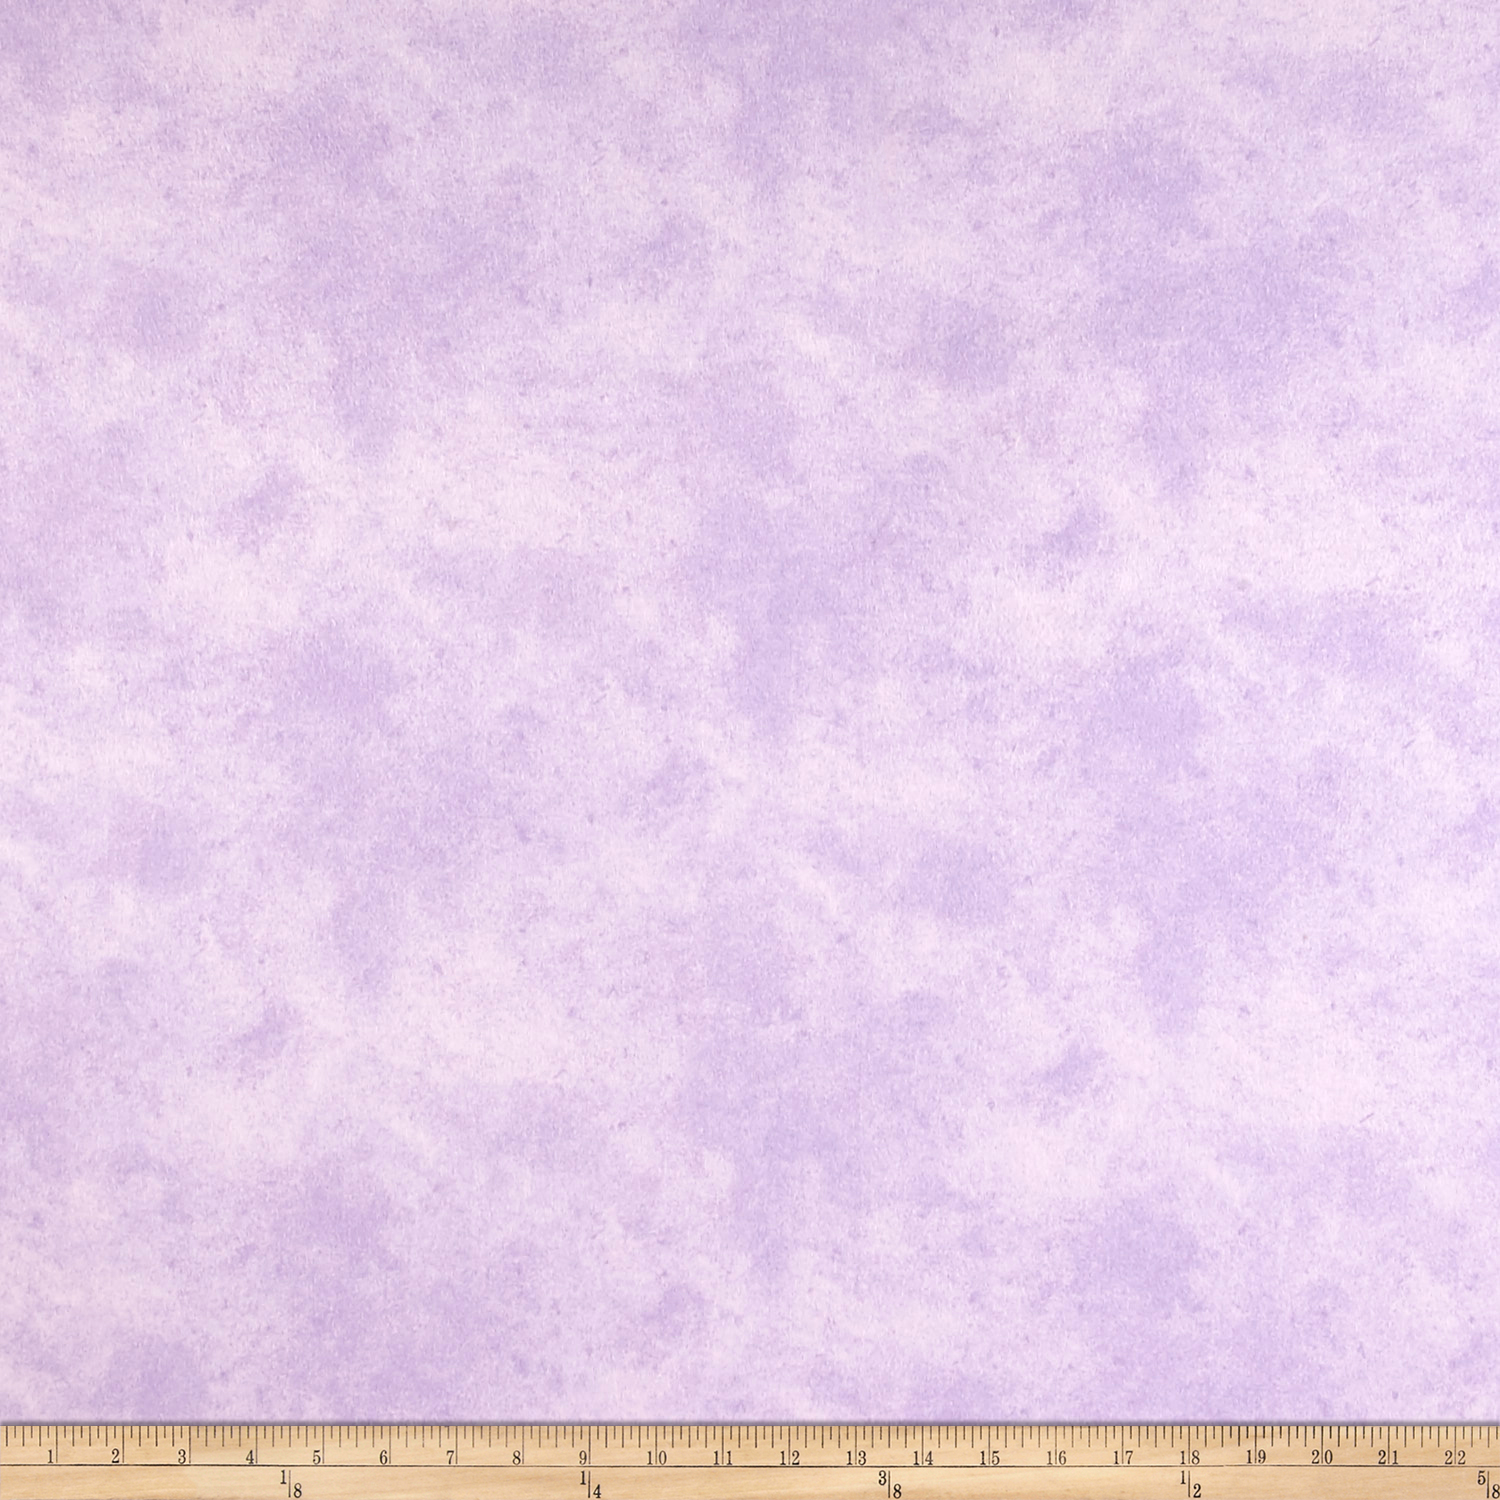 Suede Flannels Lilac Fabric by P & B in USA